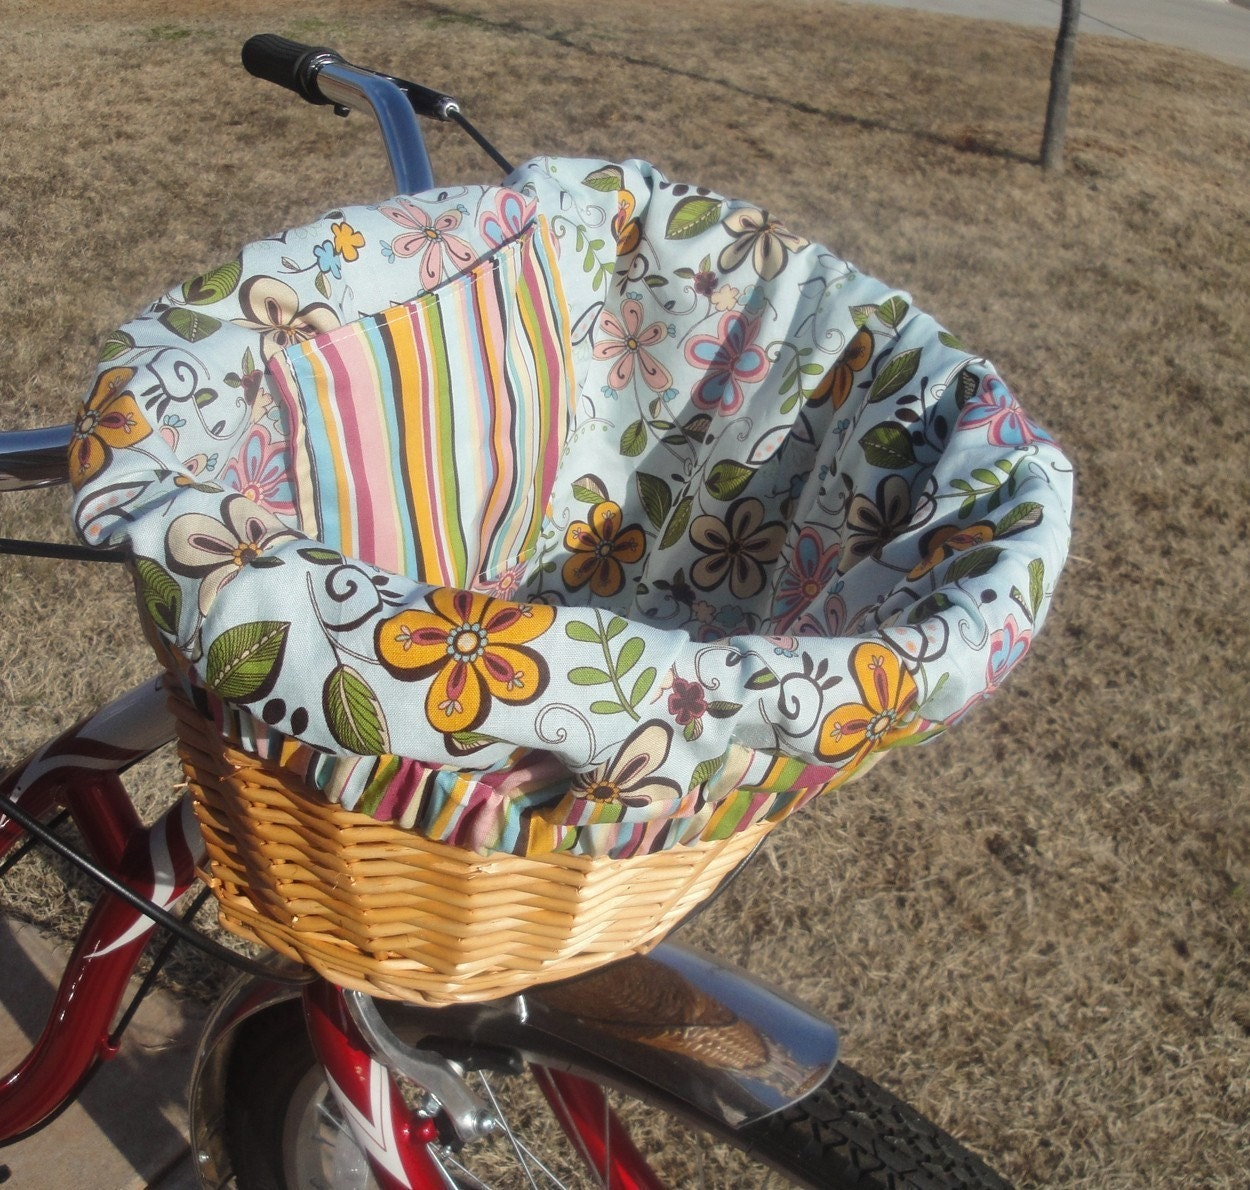 Handmade Bicycle Baskets : Custom bicycle basket liner for cruiser bikes mesh wicker or